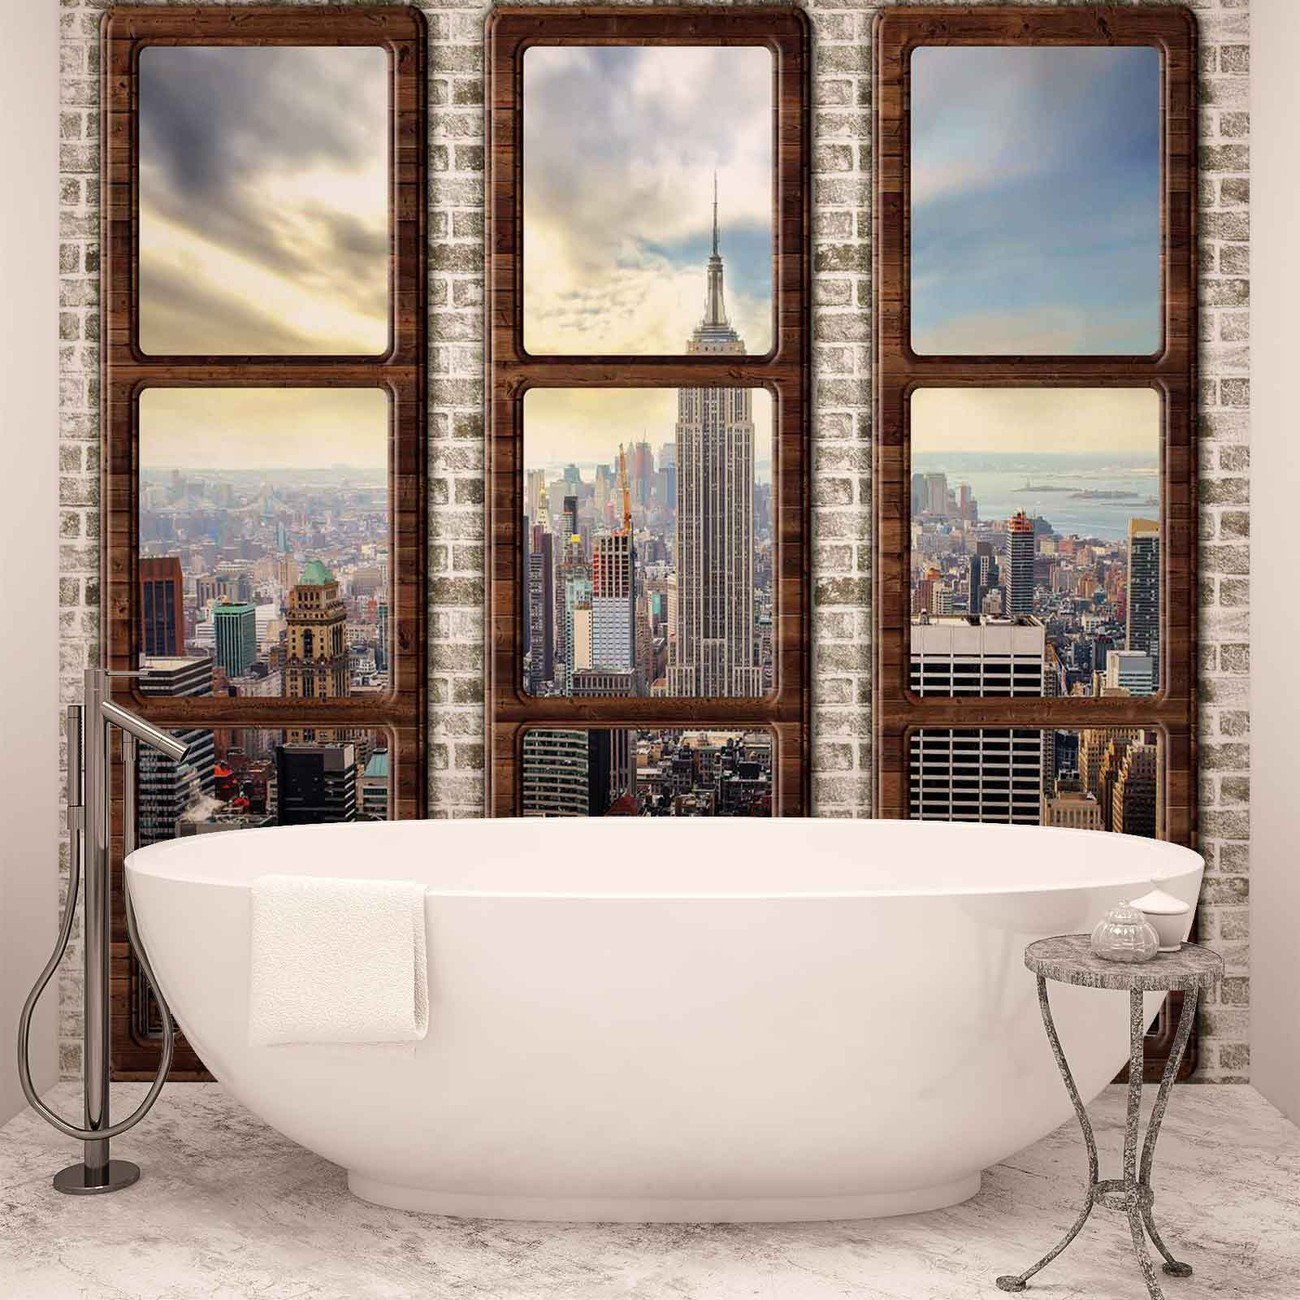 new york city skyline window view wall paper mural buy at europosters. Black Bedroom Furniture Sets. Home Design Ideas